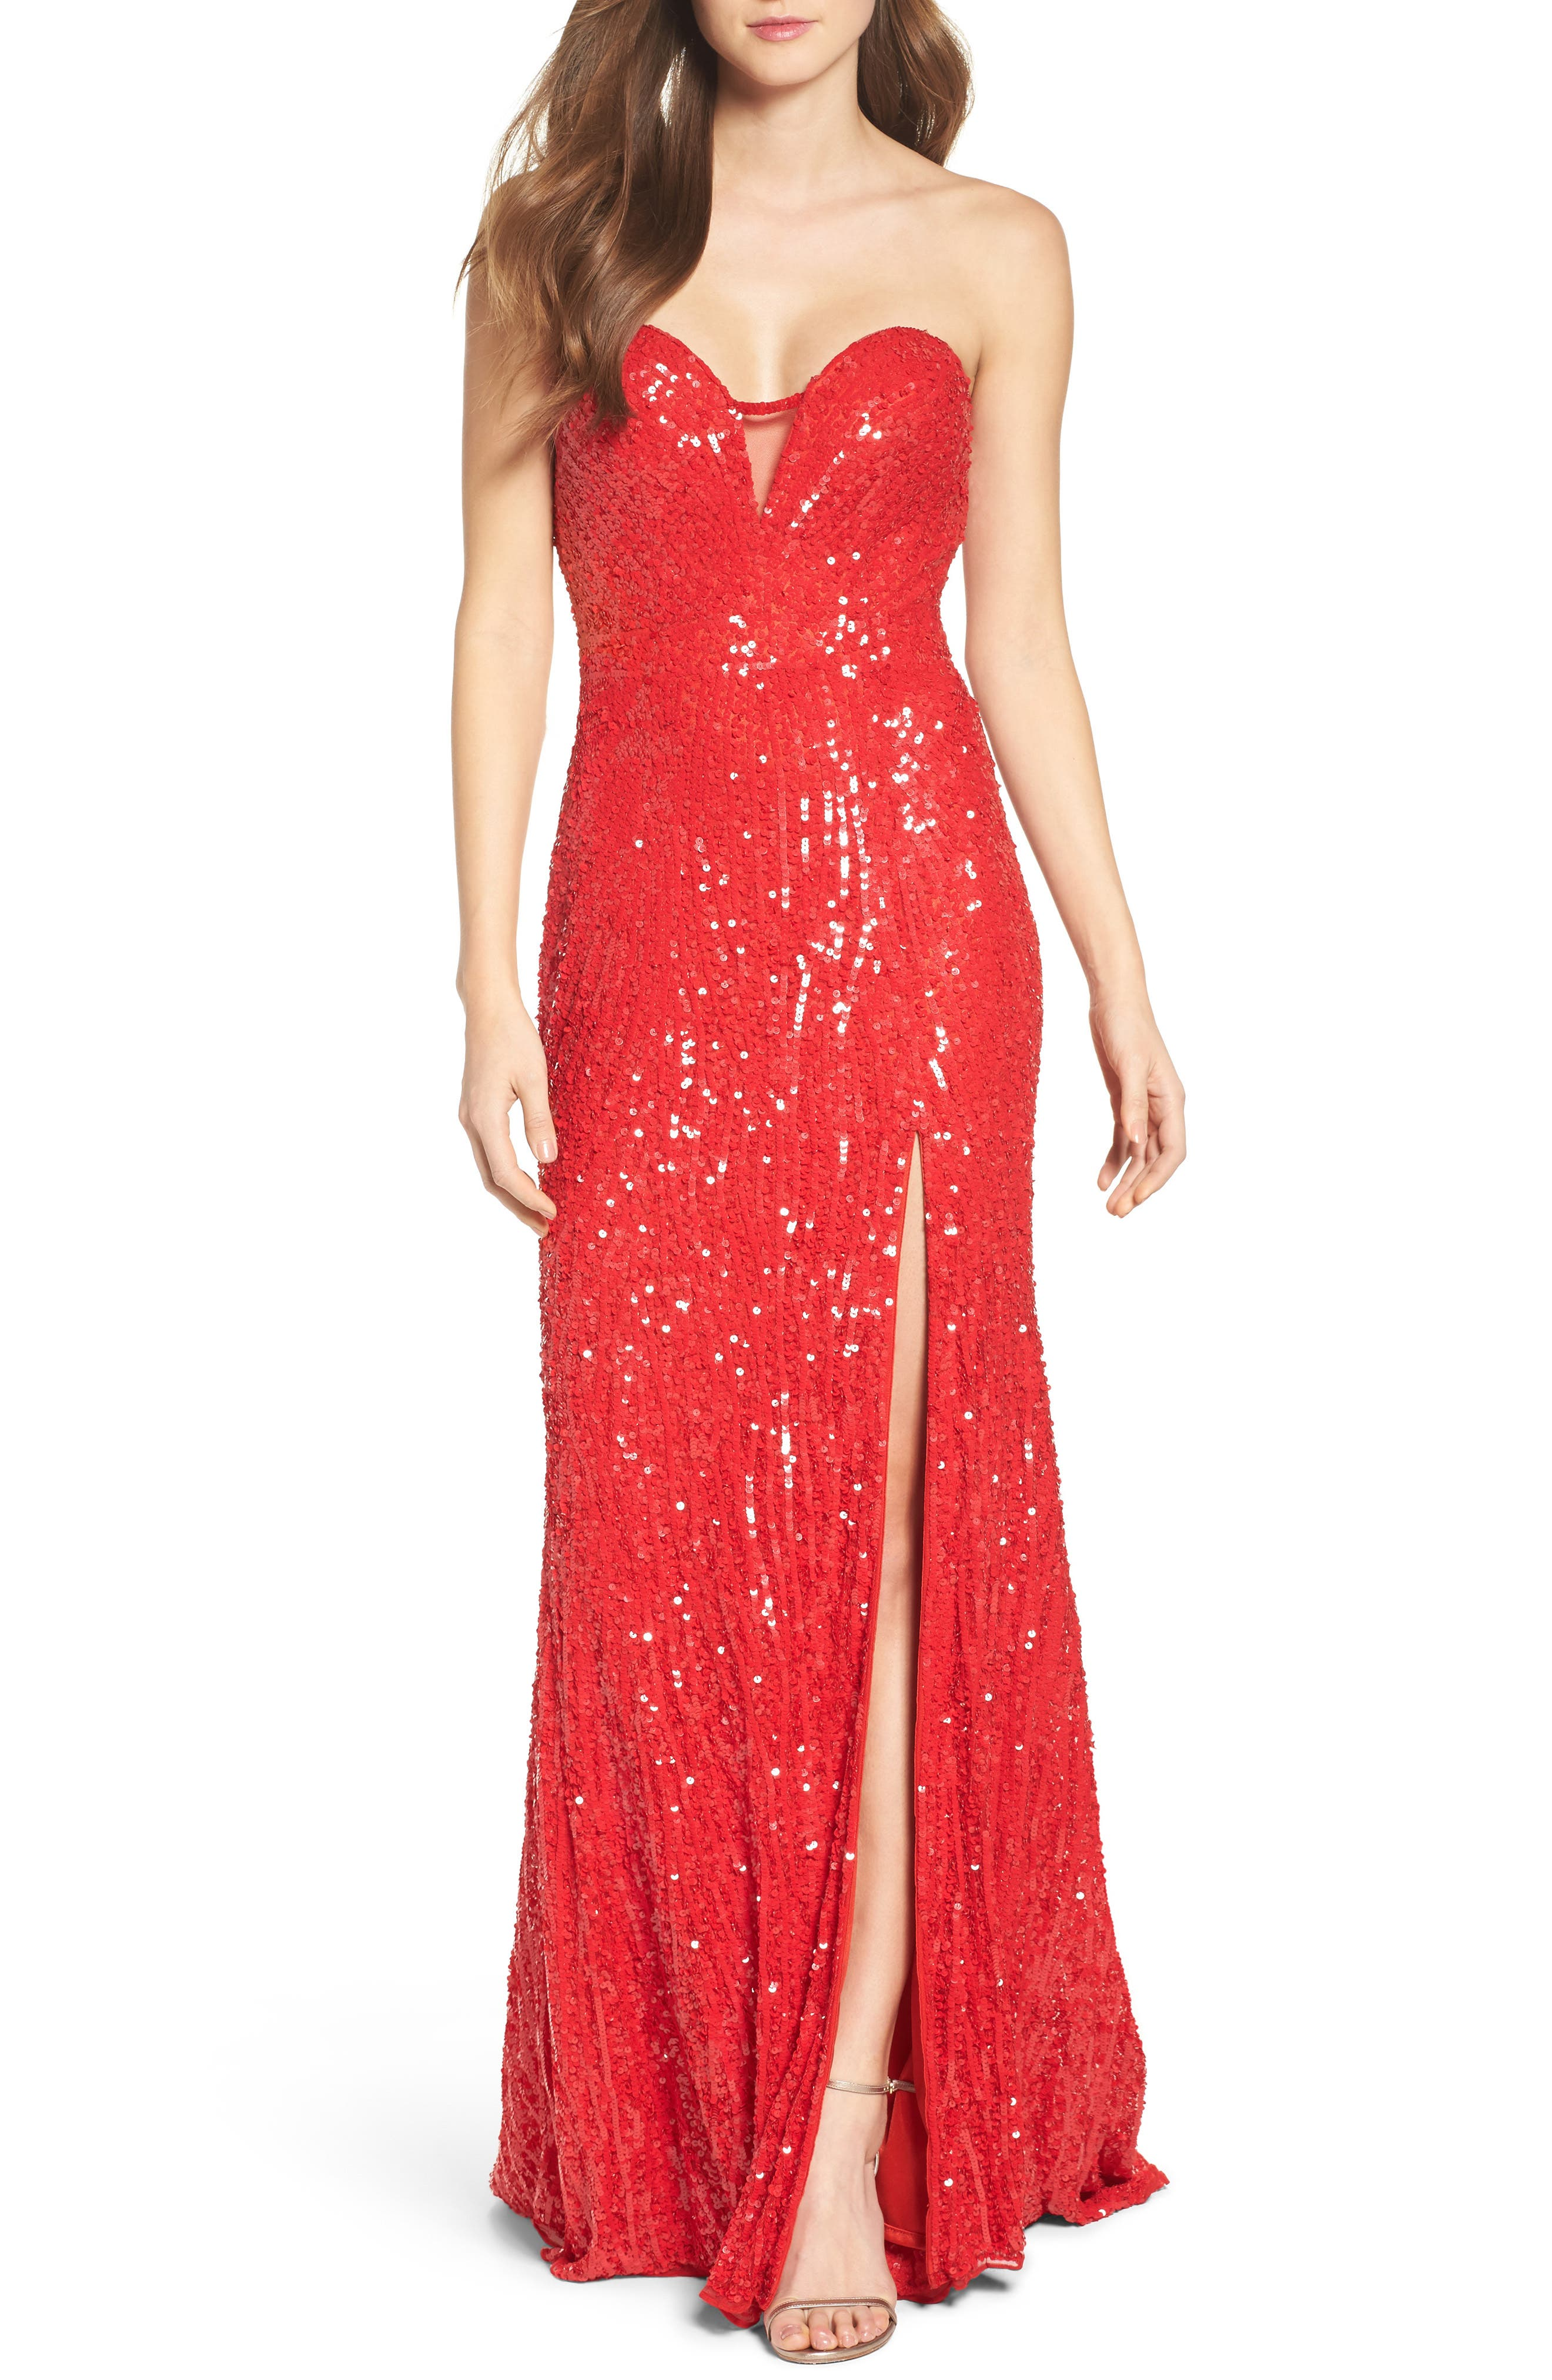 Main Image - Mac Duggal Front Slit Sequin Strapless Gown